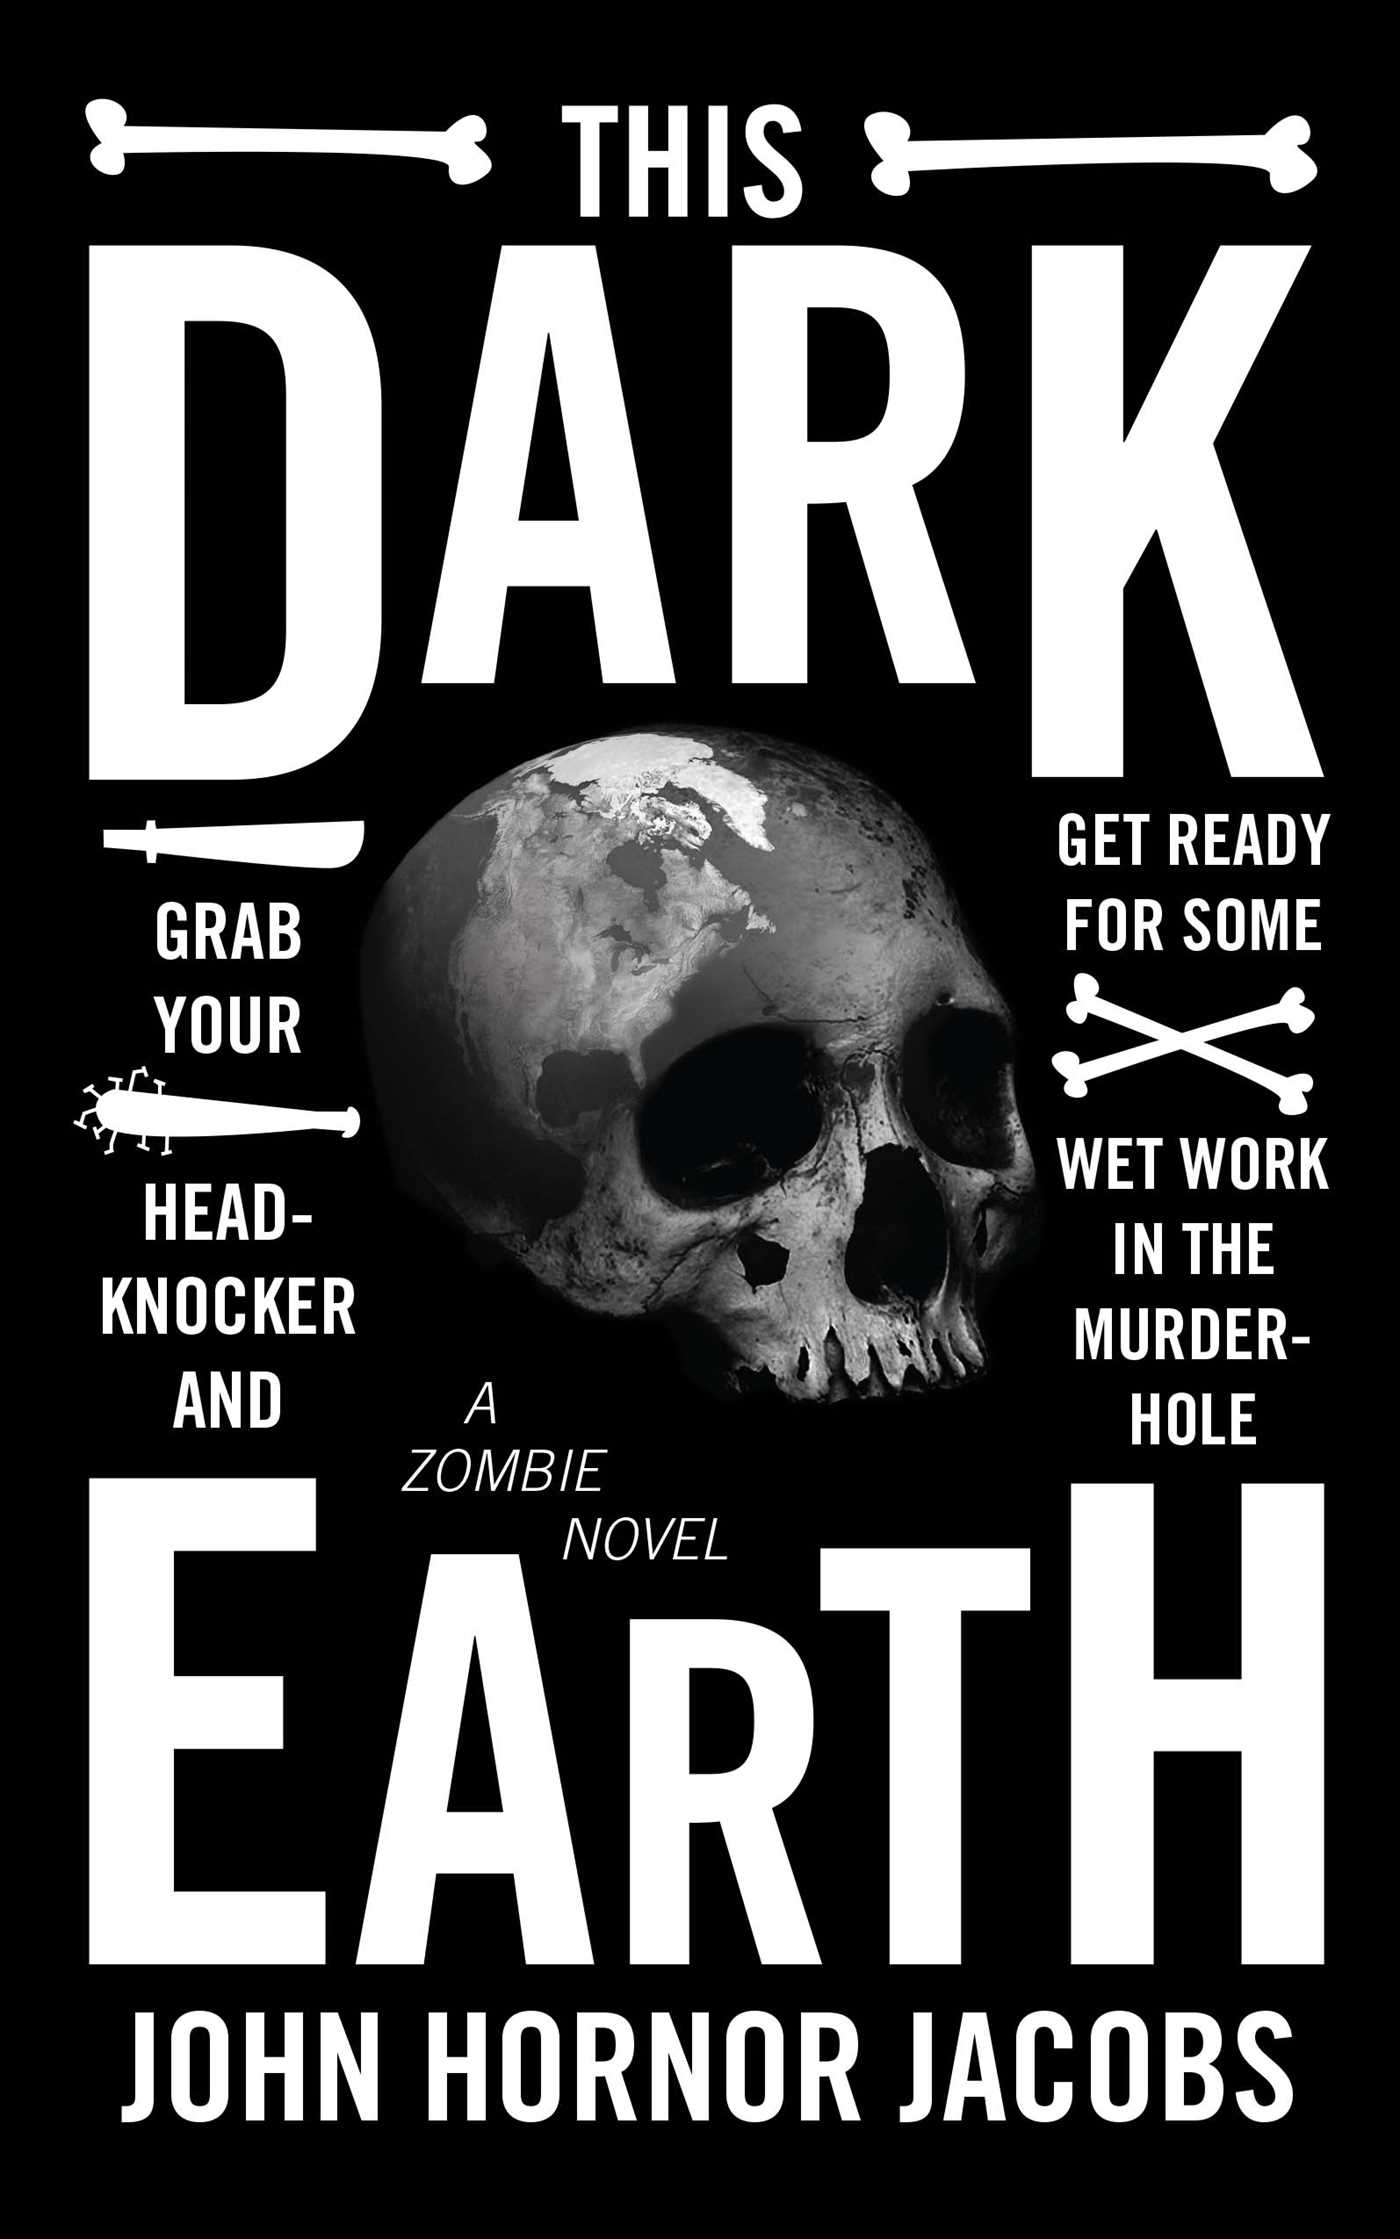 This-dark-earth-9781451666670_hr